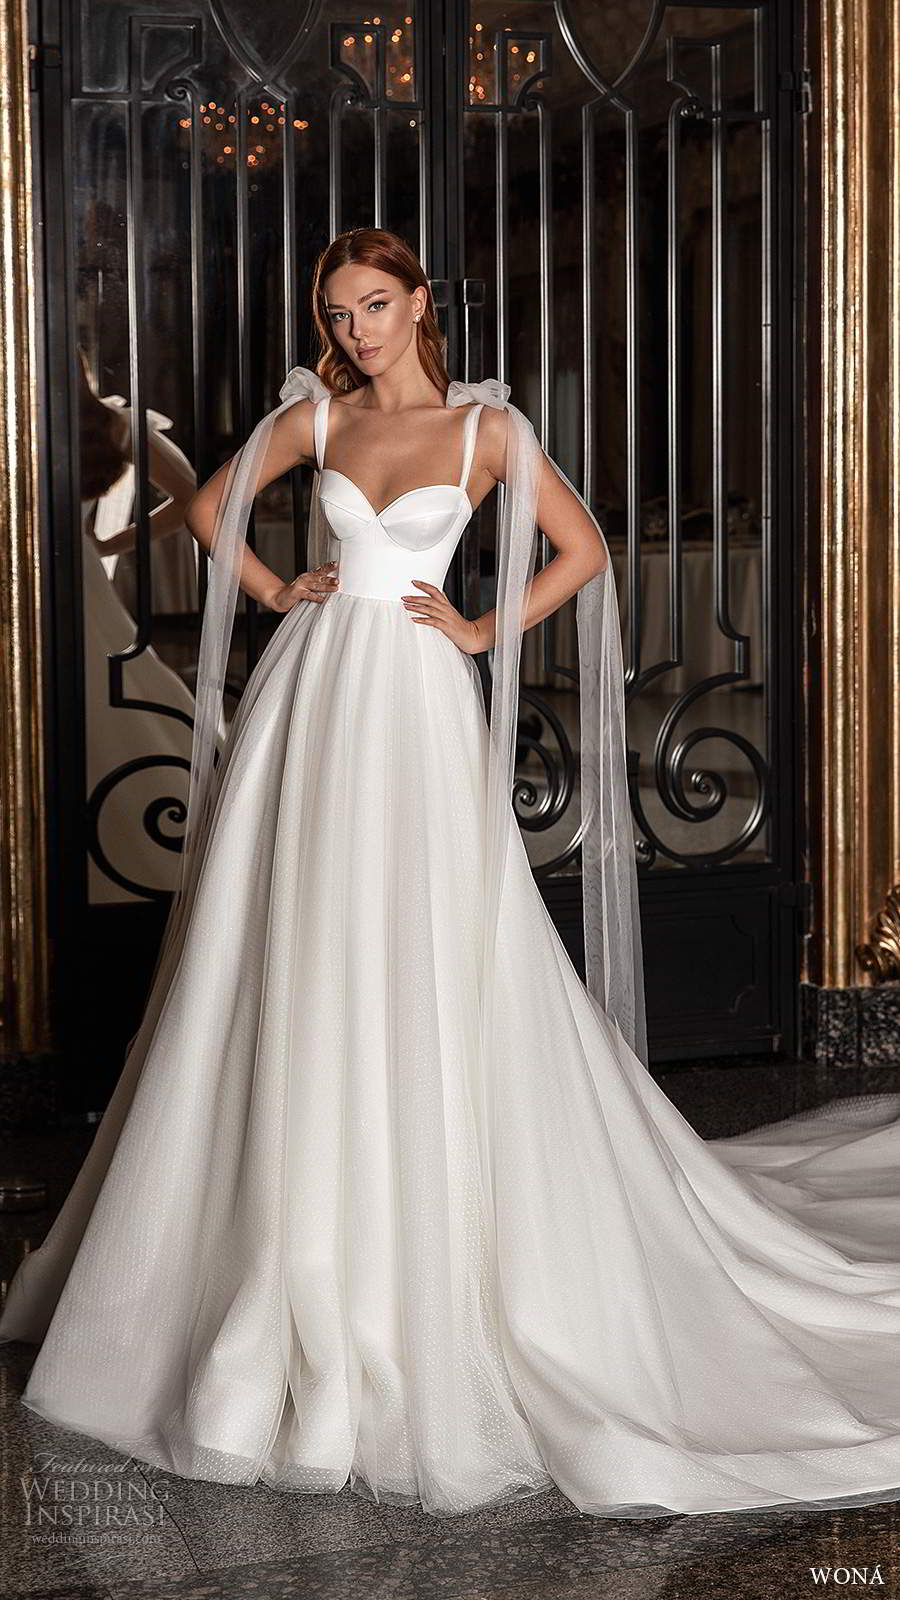 wona 2020 edem bridal sleeveless tie straps sweetheart neckline clean minimalist a line ball gown wedding dress chapel train (8) mv